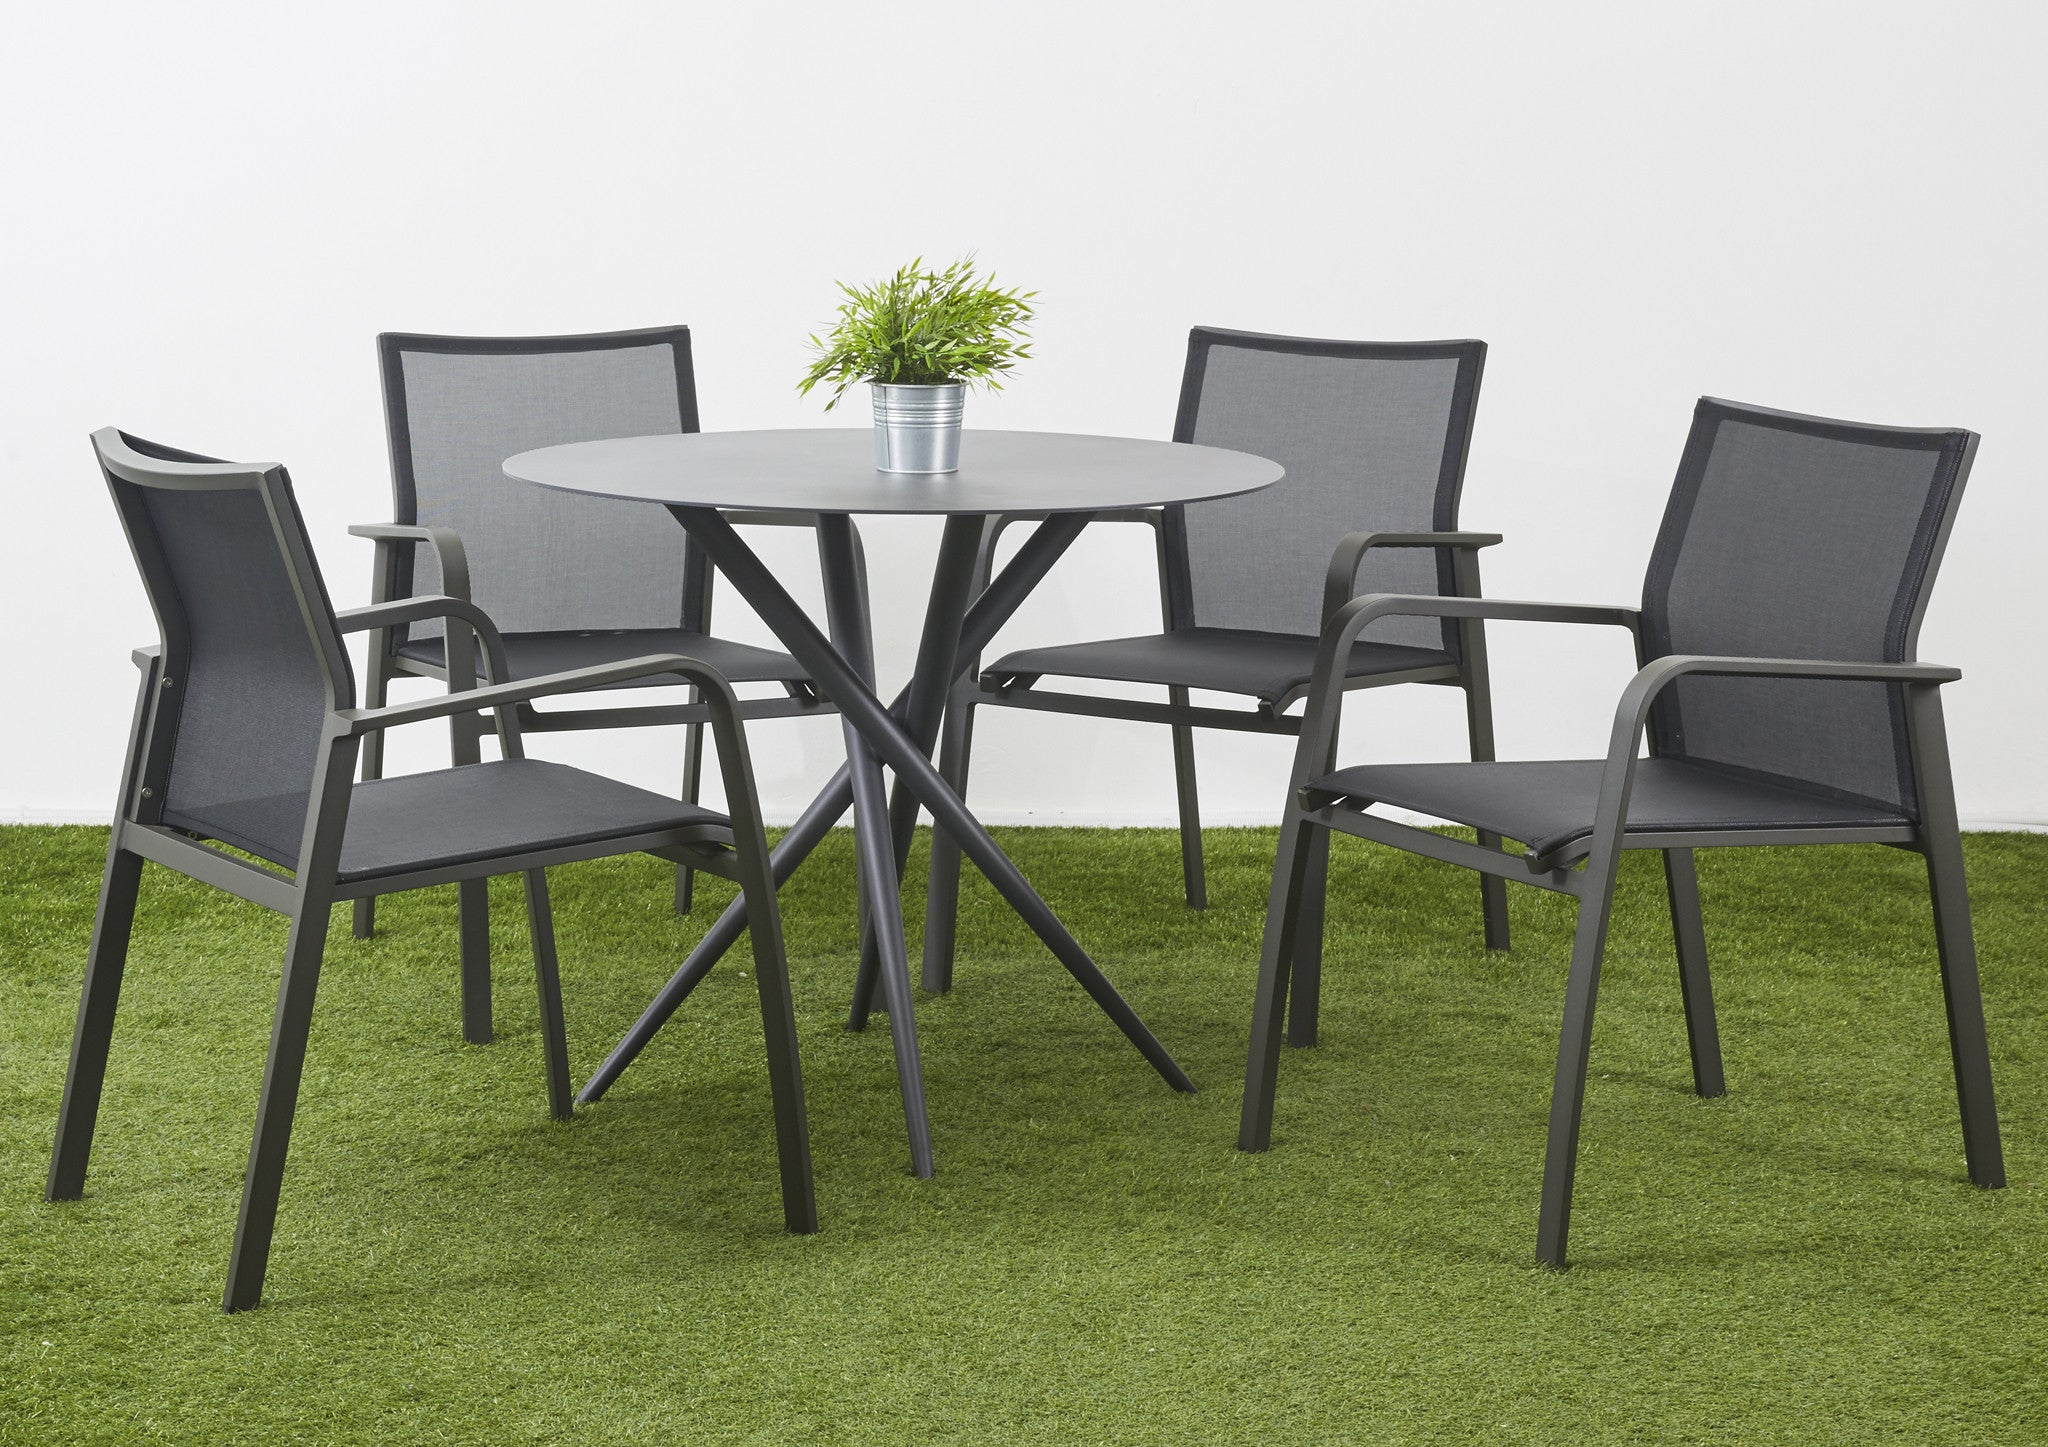 LYON WITH KAVALA 2 SEATER 4 SEATER DINING SET Boulevard Outdoor